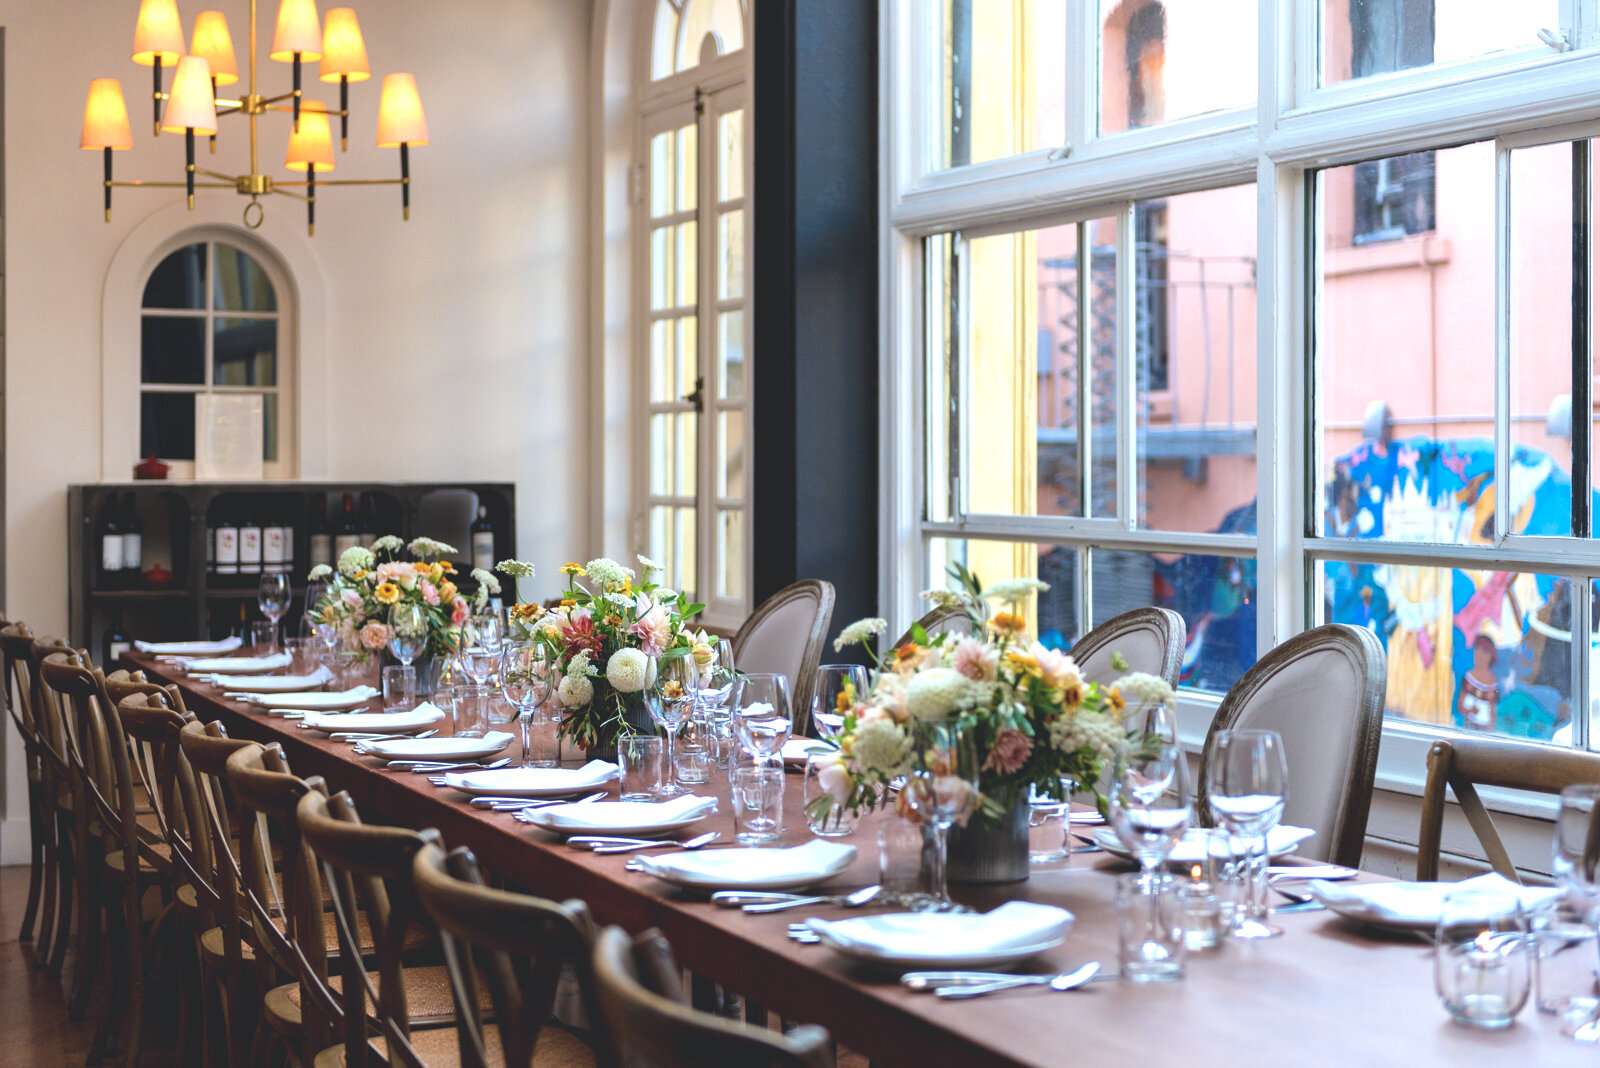 cookhouse-san-francisco-private-group-birthday-dinner-idea.jpg